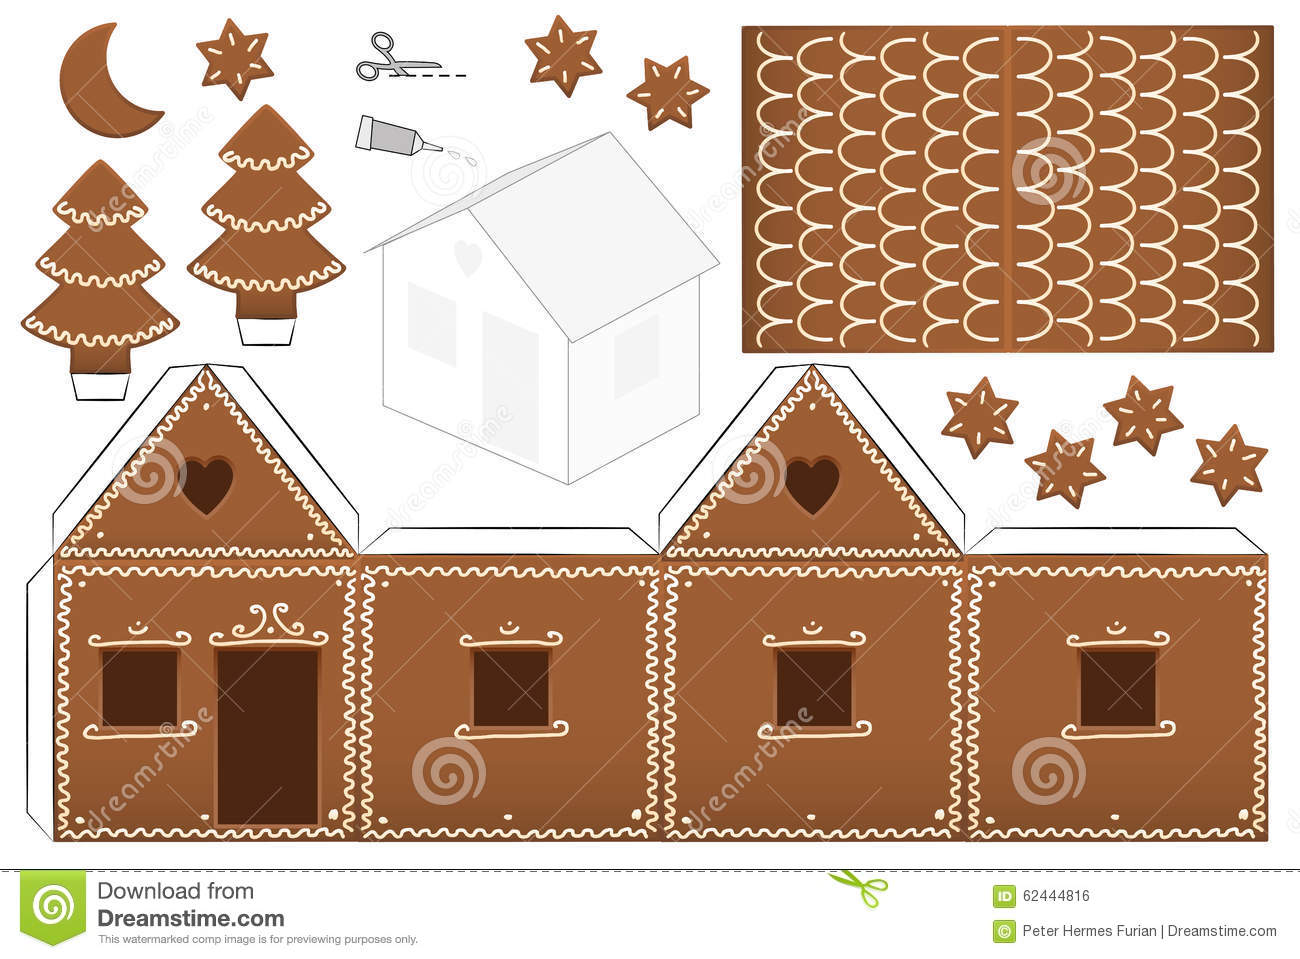 Gingerbread house paper model with trees, moon and stars - print it on ...